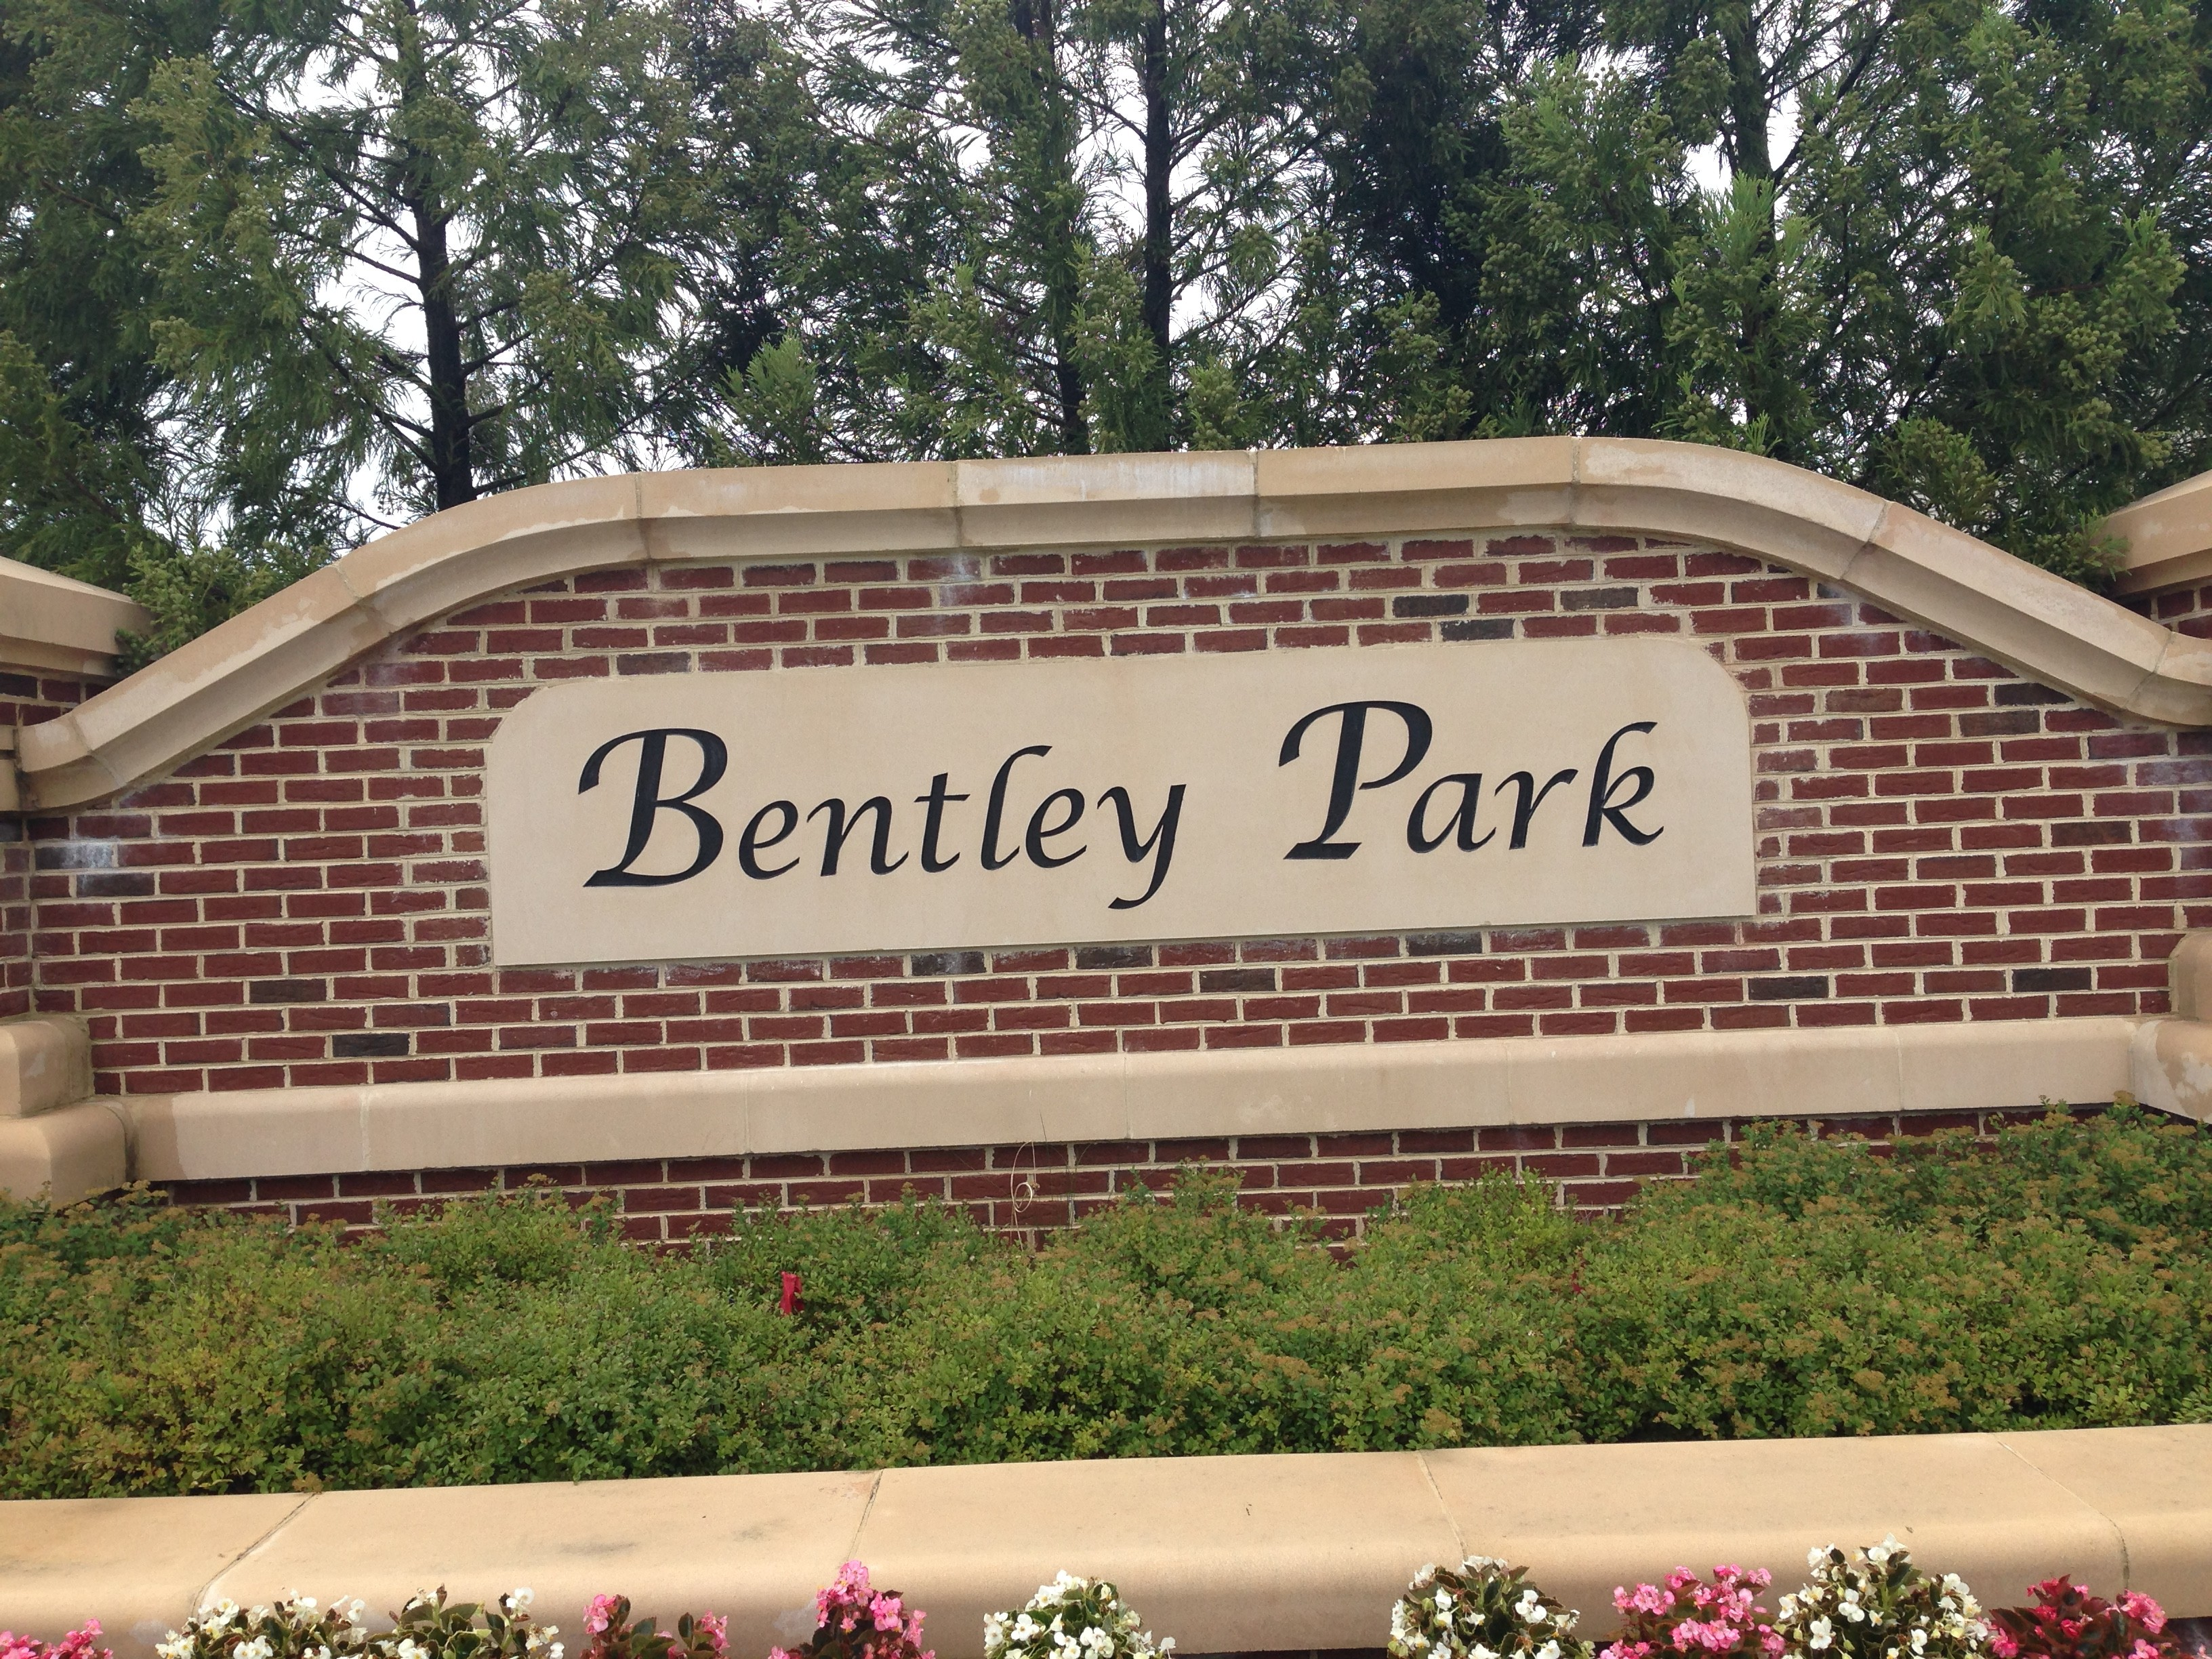 New Homes For Sale In Bentley Park Laurel Maryland Maryland Real